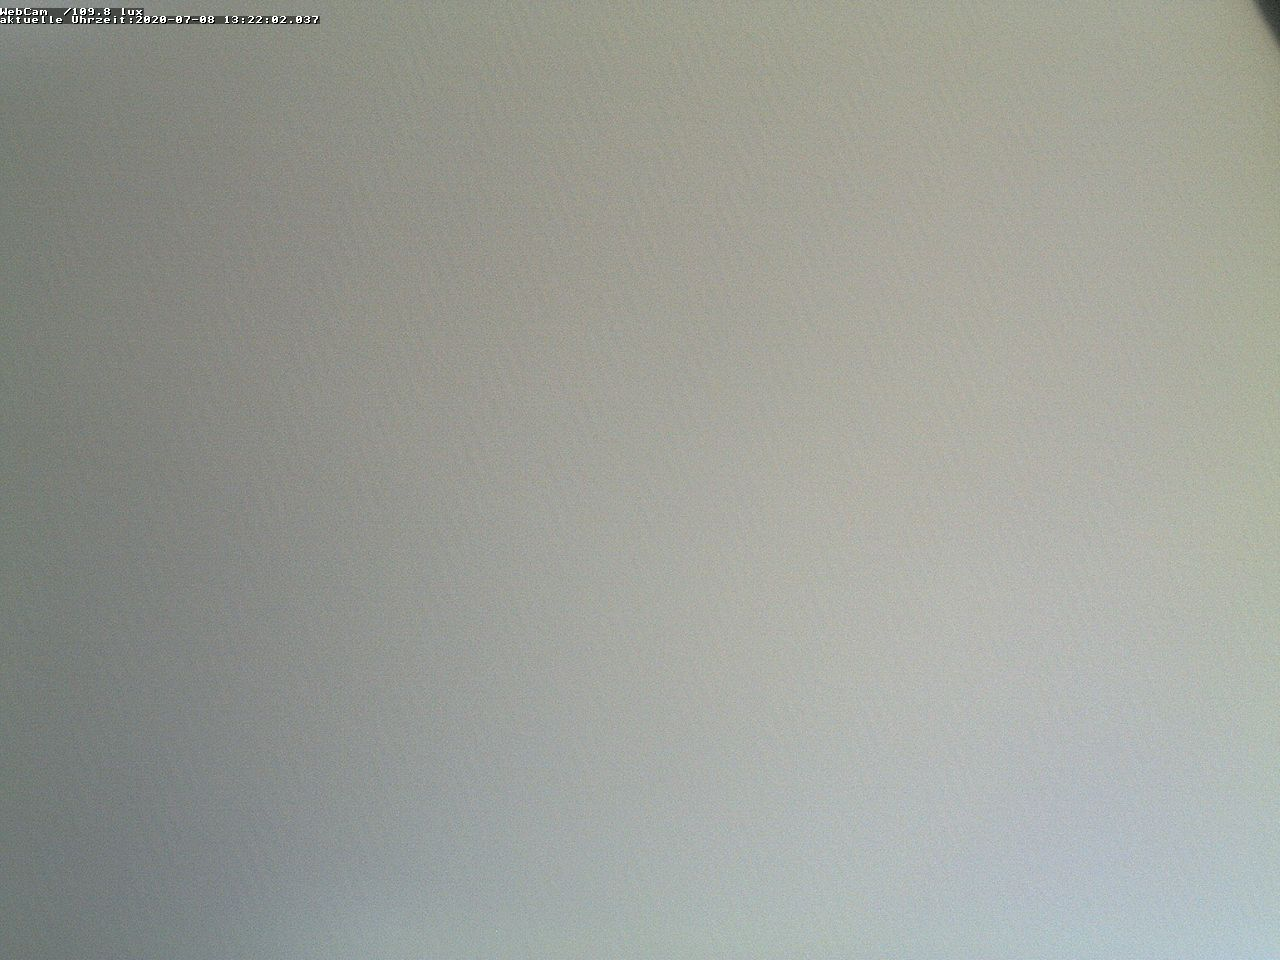 Webcam Sasbachwalden, Neubaugebiet Michelbach